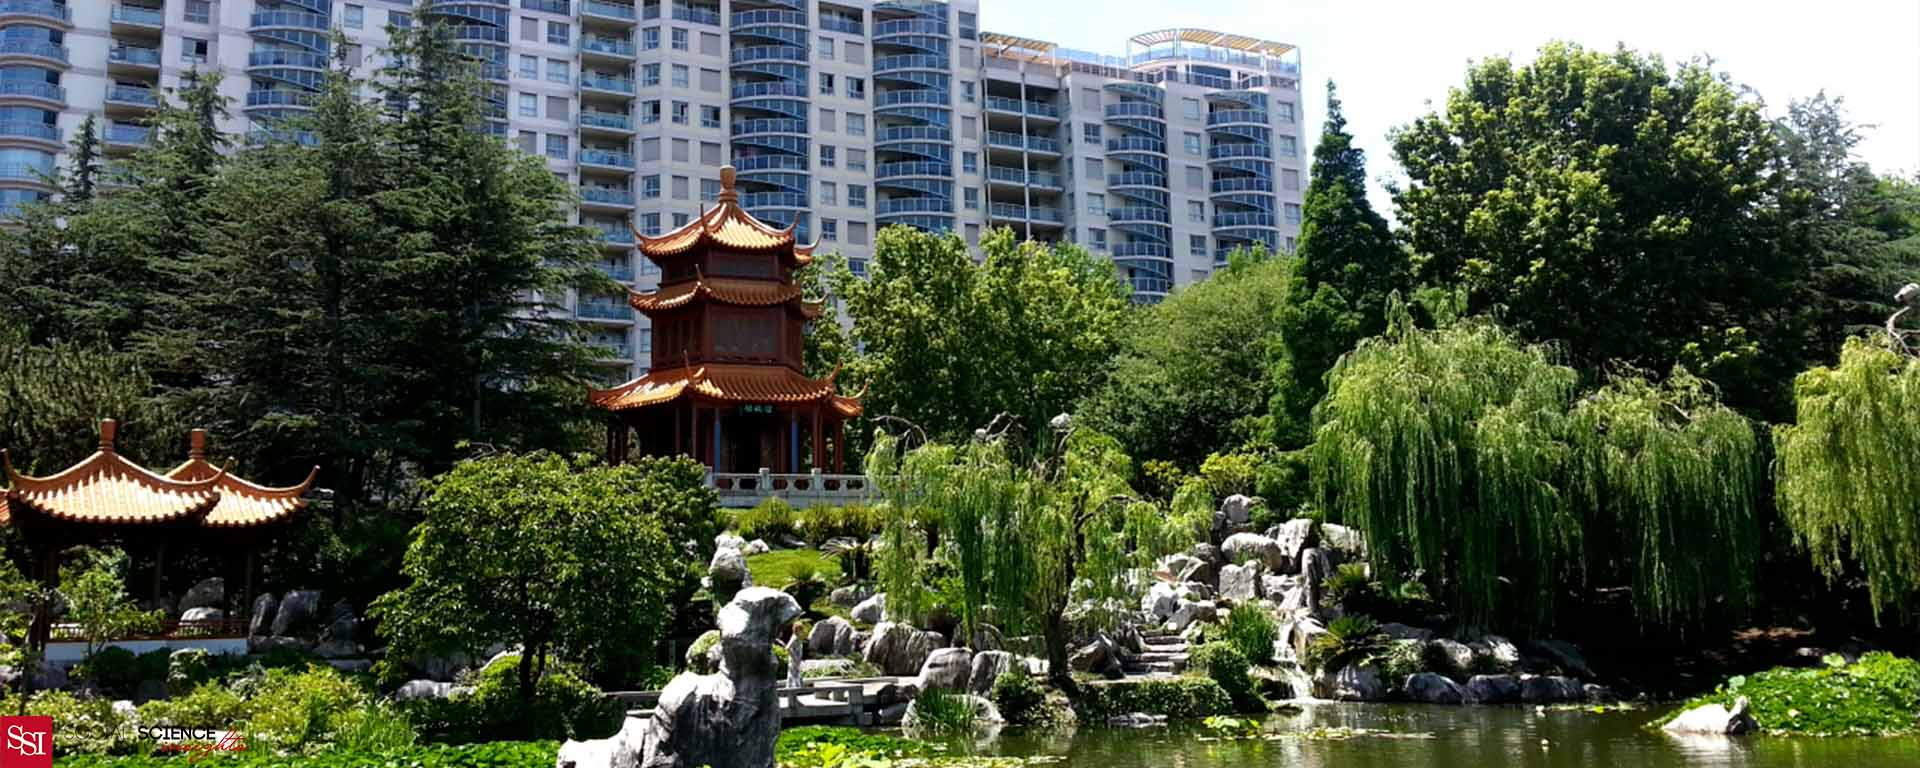 The Chinese Friendship Garden in Sydney in the foreground. Water, a beautiful Chinese temple. In the background are tall buildings in the Sydney CBD